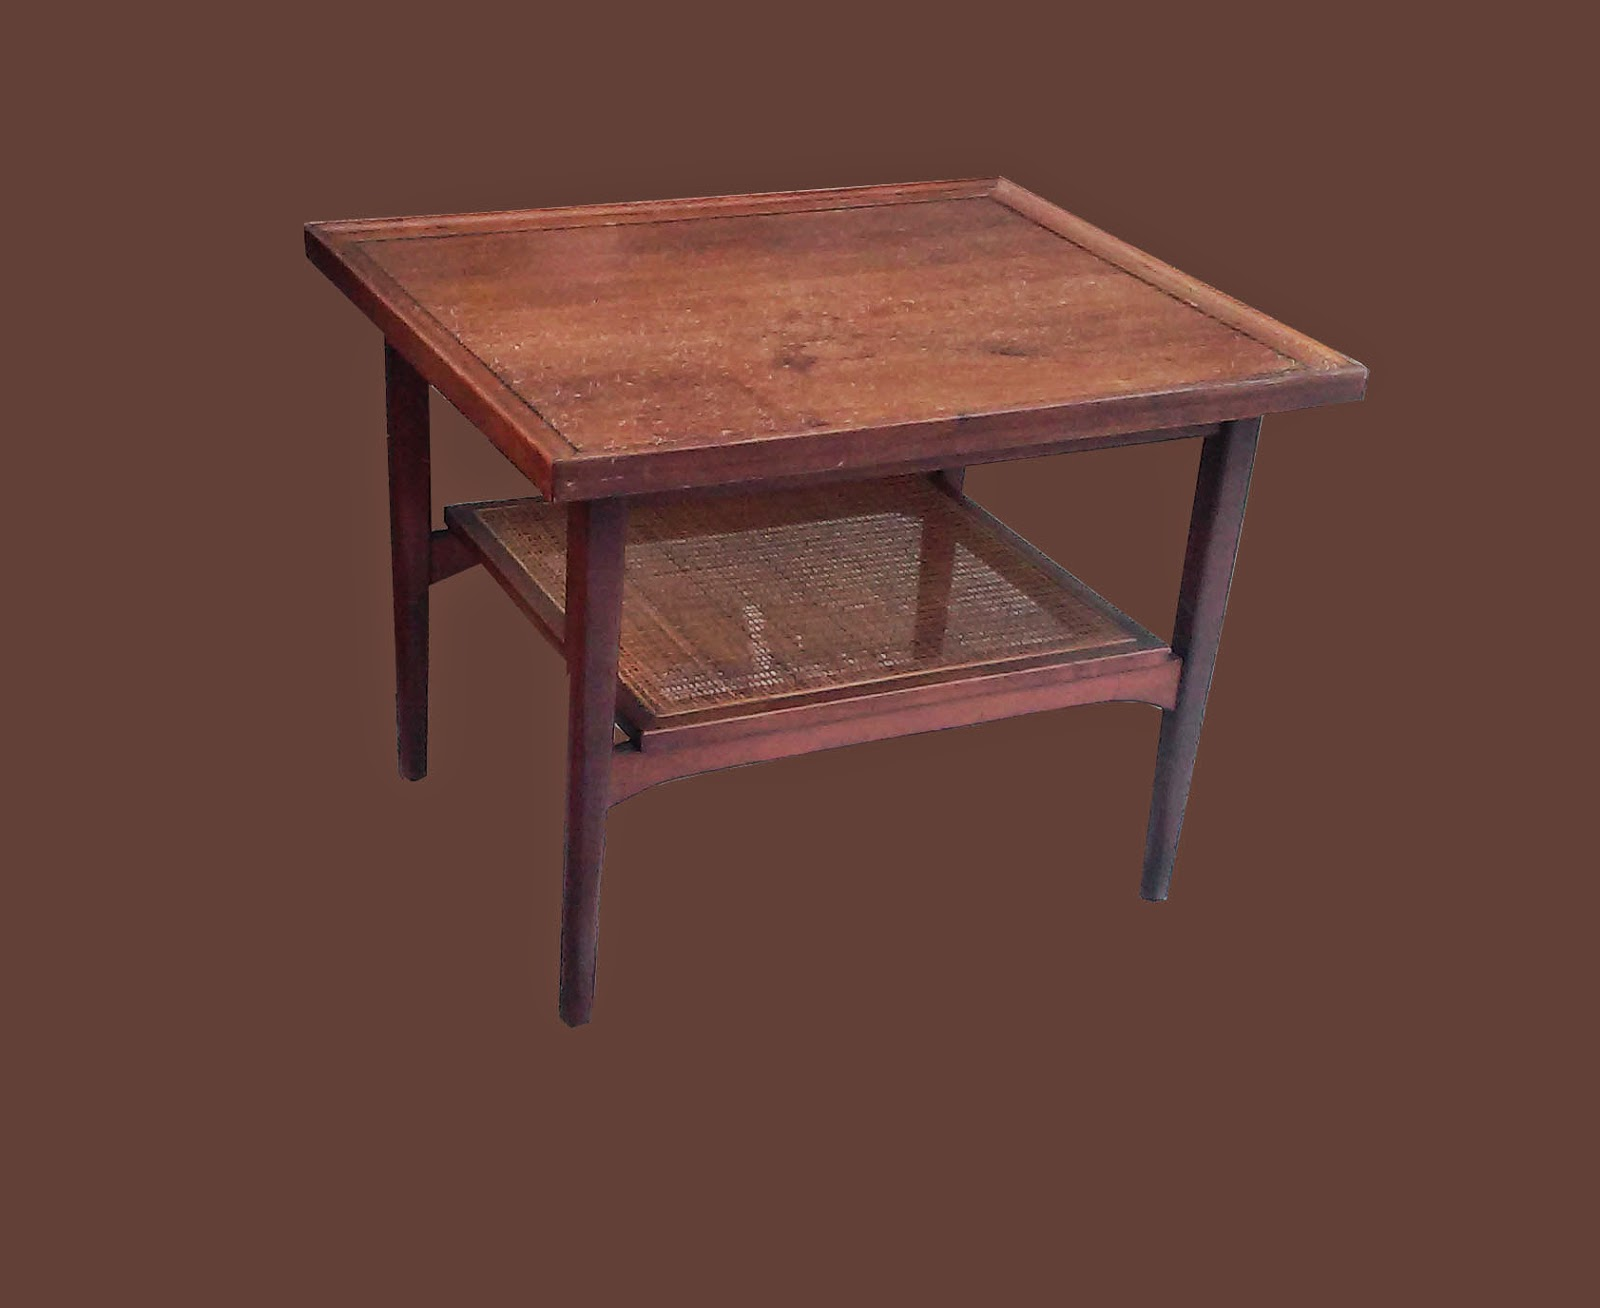 Scroll Down For Current Photos Of Furniture For Sale